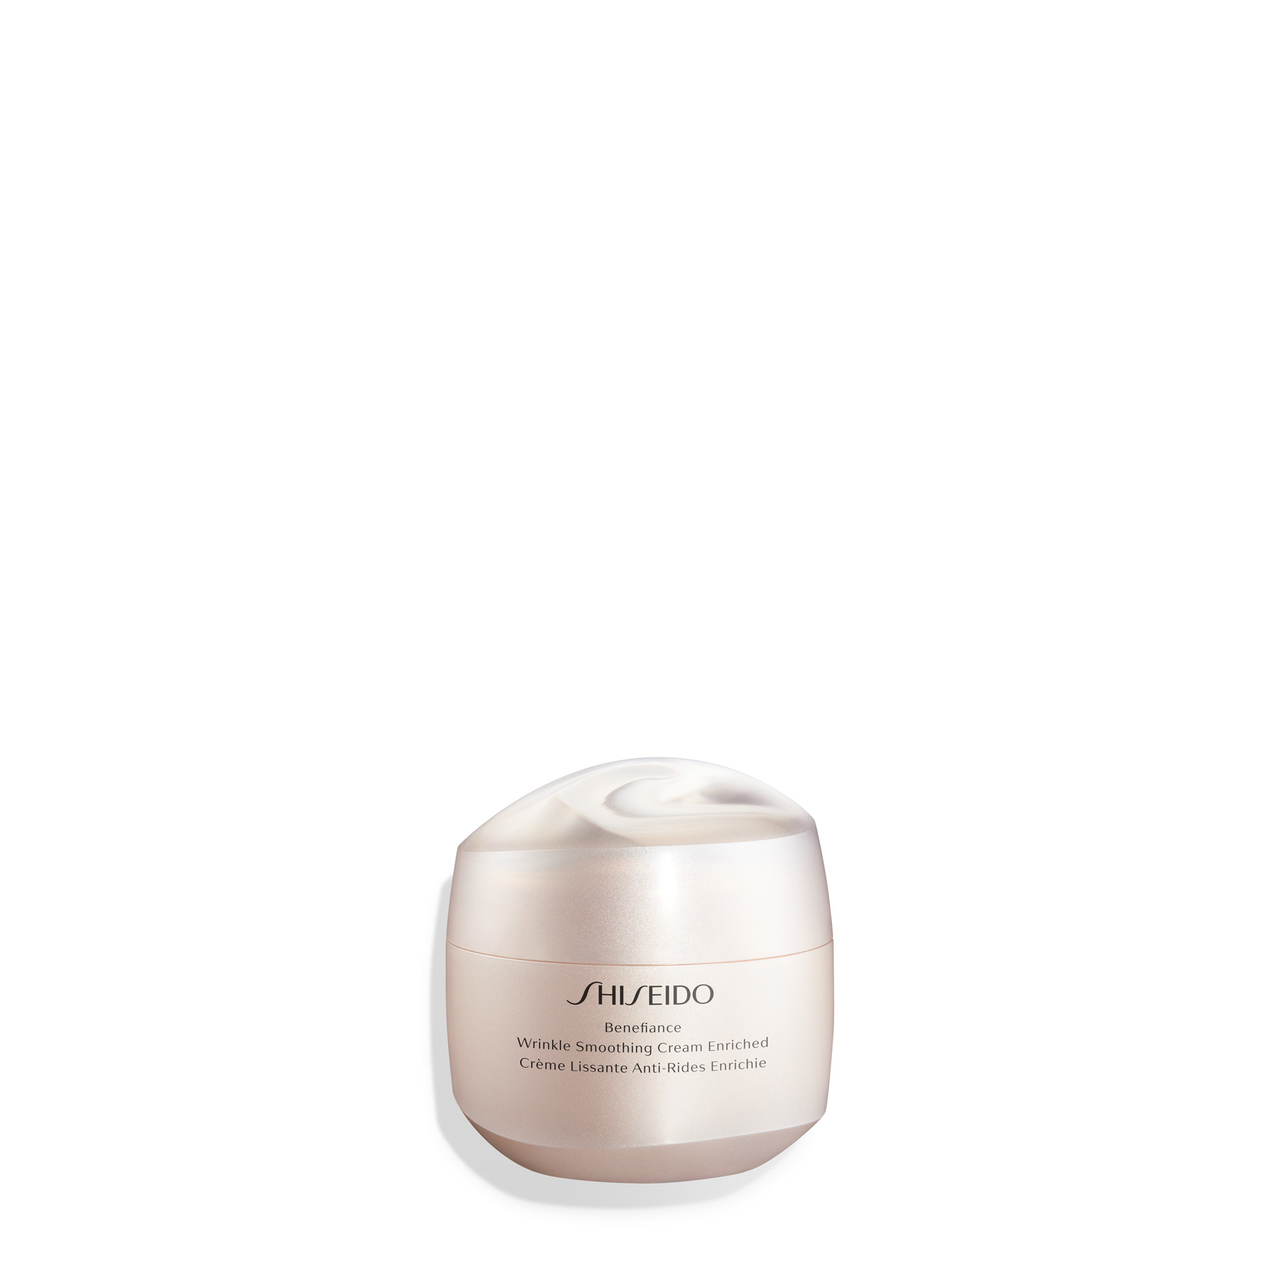 Benefiance Shiseido WRINKLE SMOOTHING CREAM ENRICHED 75 ml